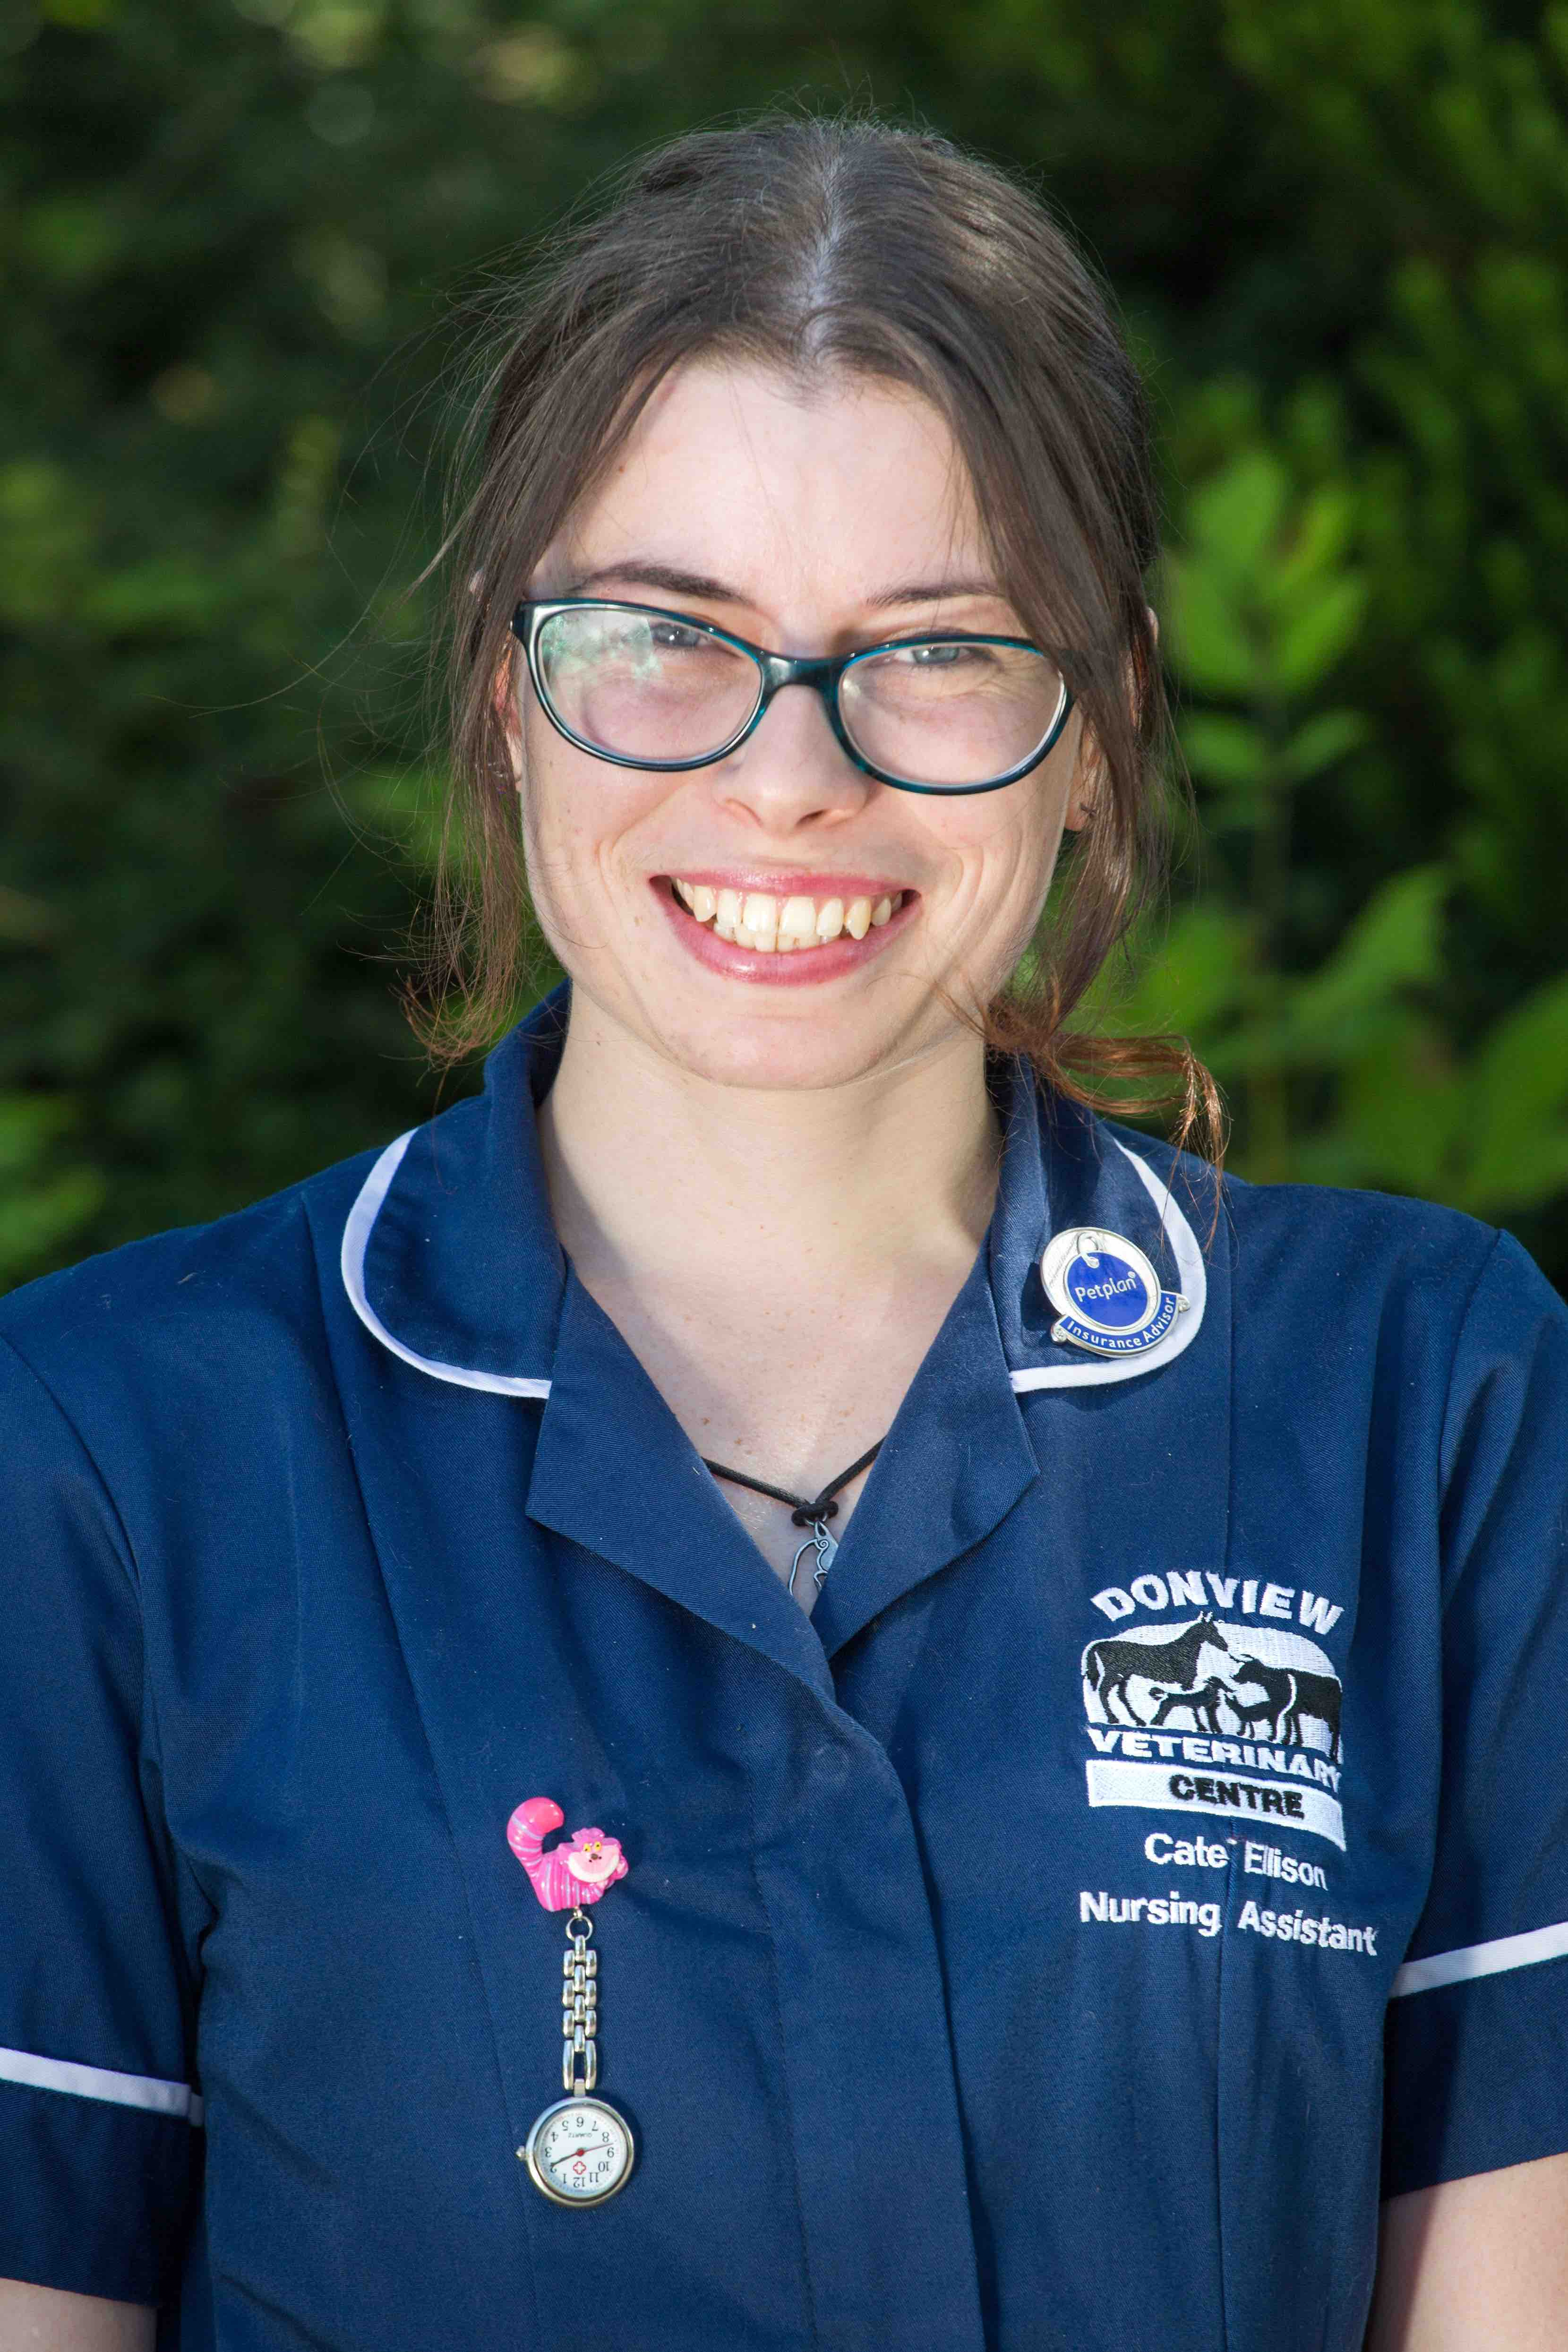 Cate Ellison Nurse